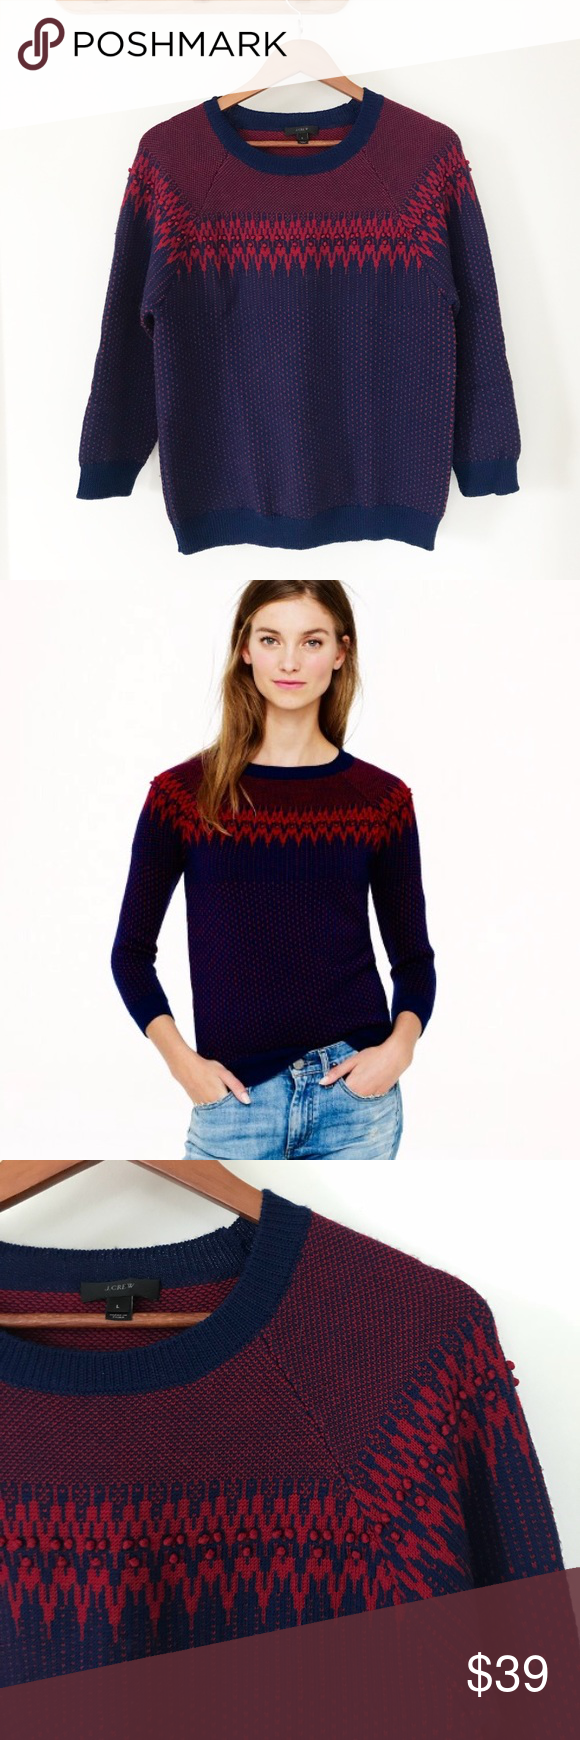 J. Crew Merino Fair Isle Wool Navy and Red Sweater Excellent ...